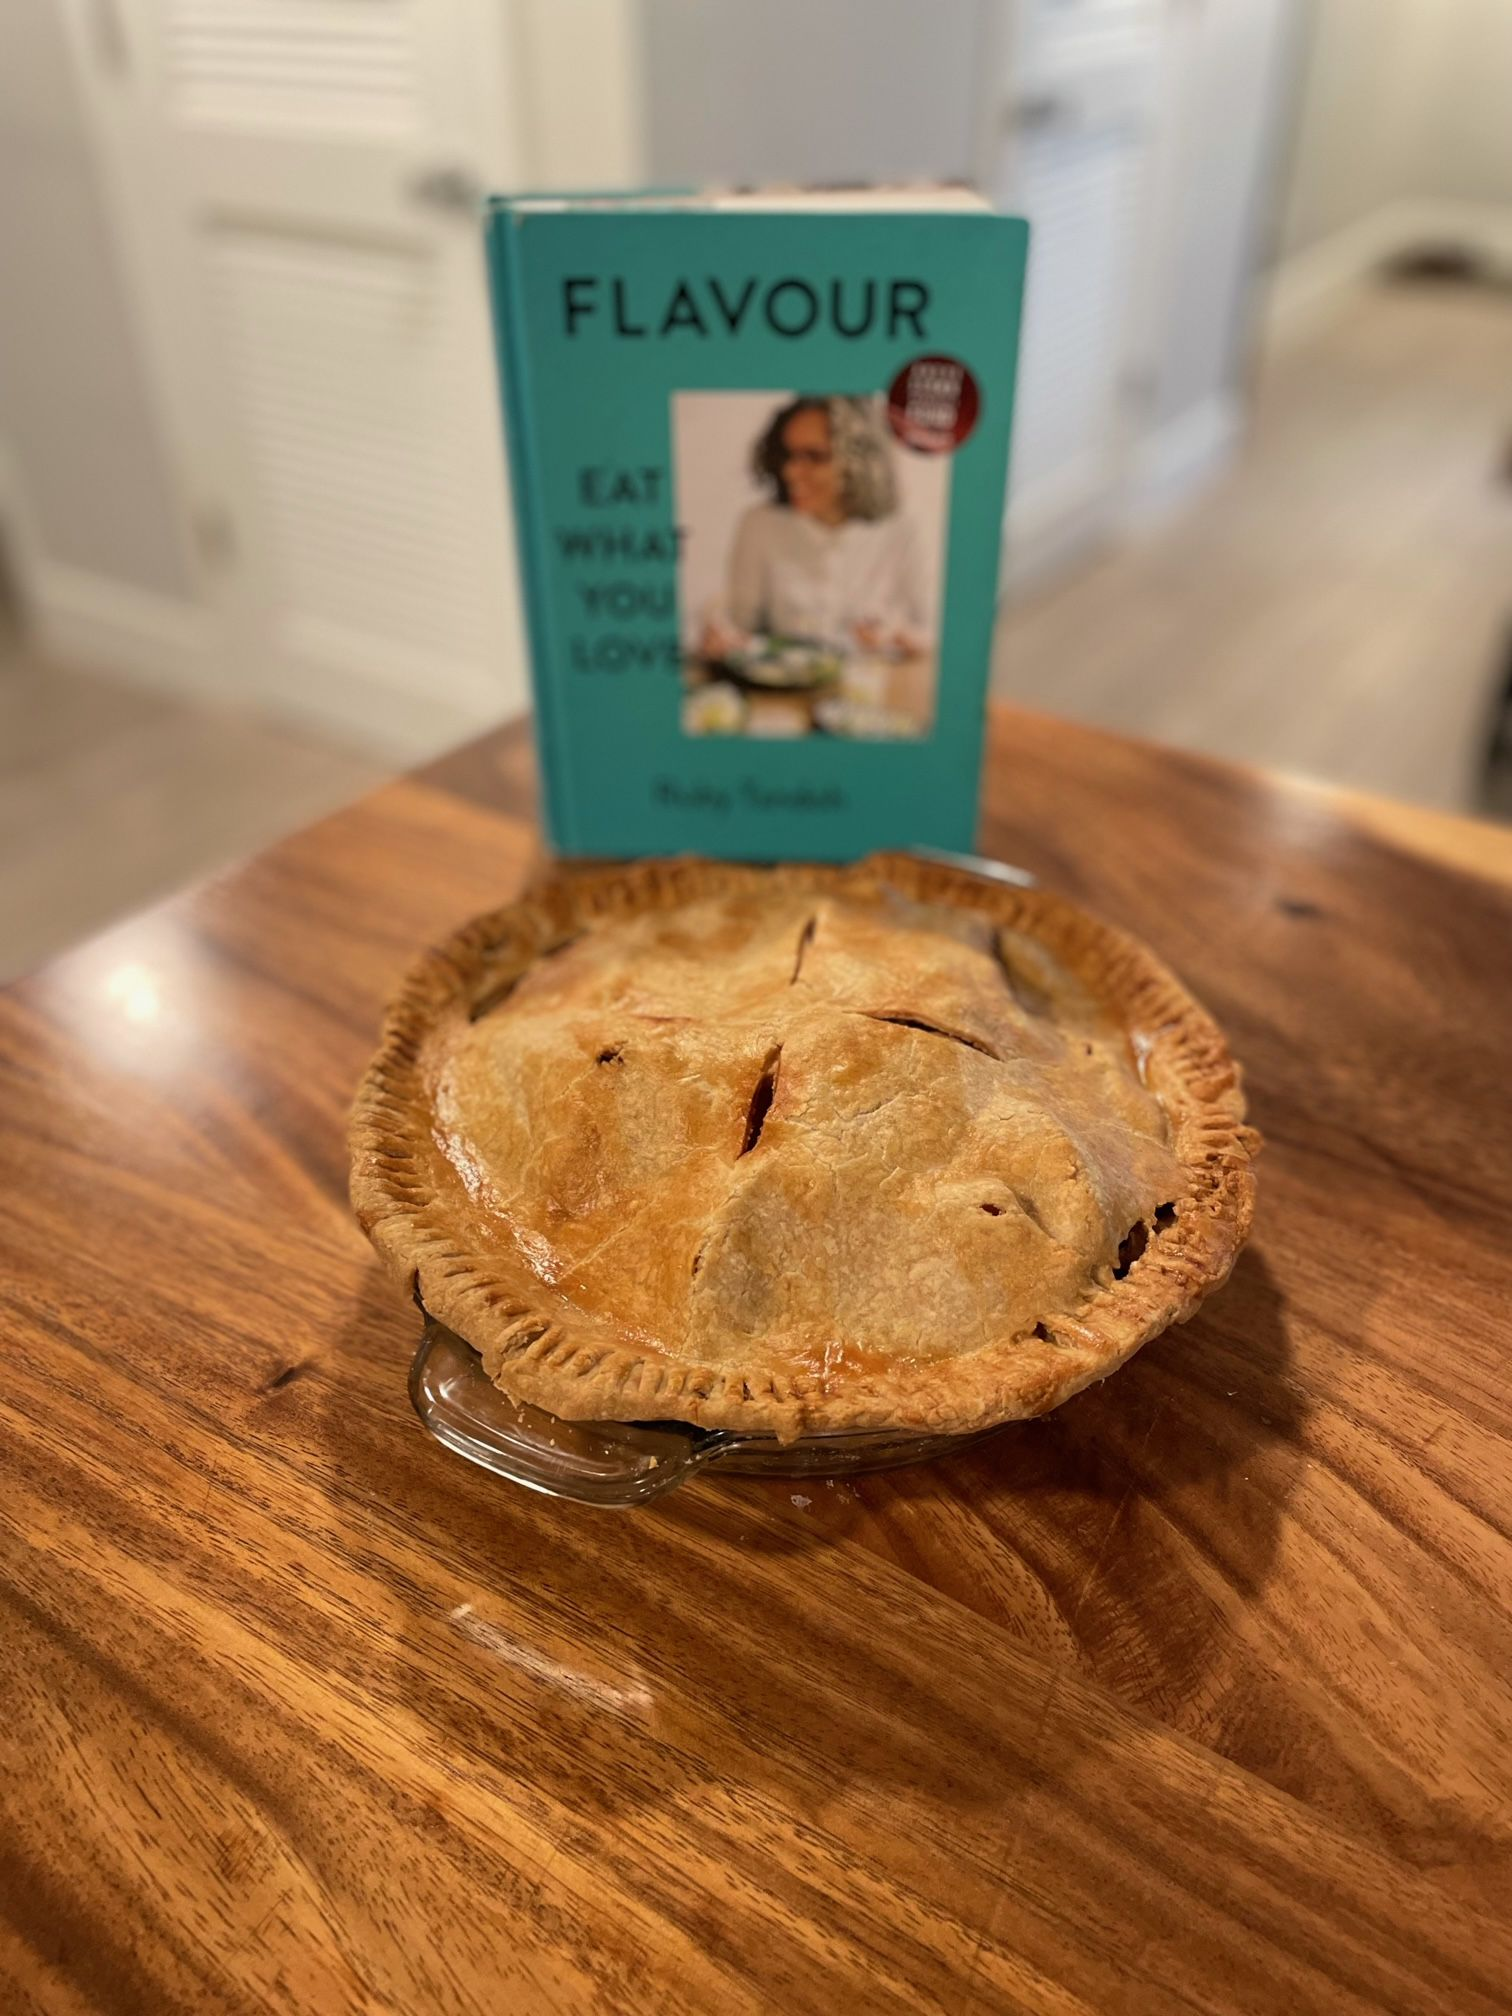 Apple pie with Flavour by Ruby Tandoh cookbook